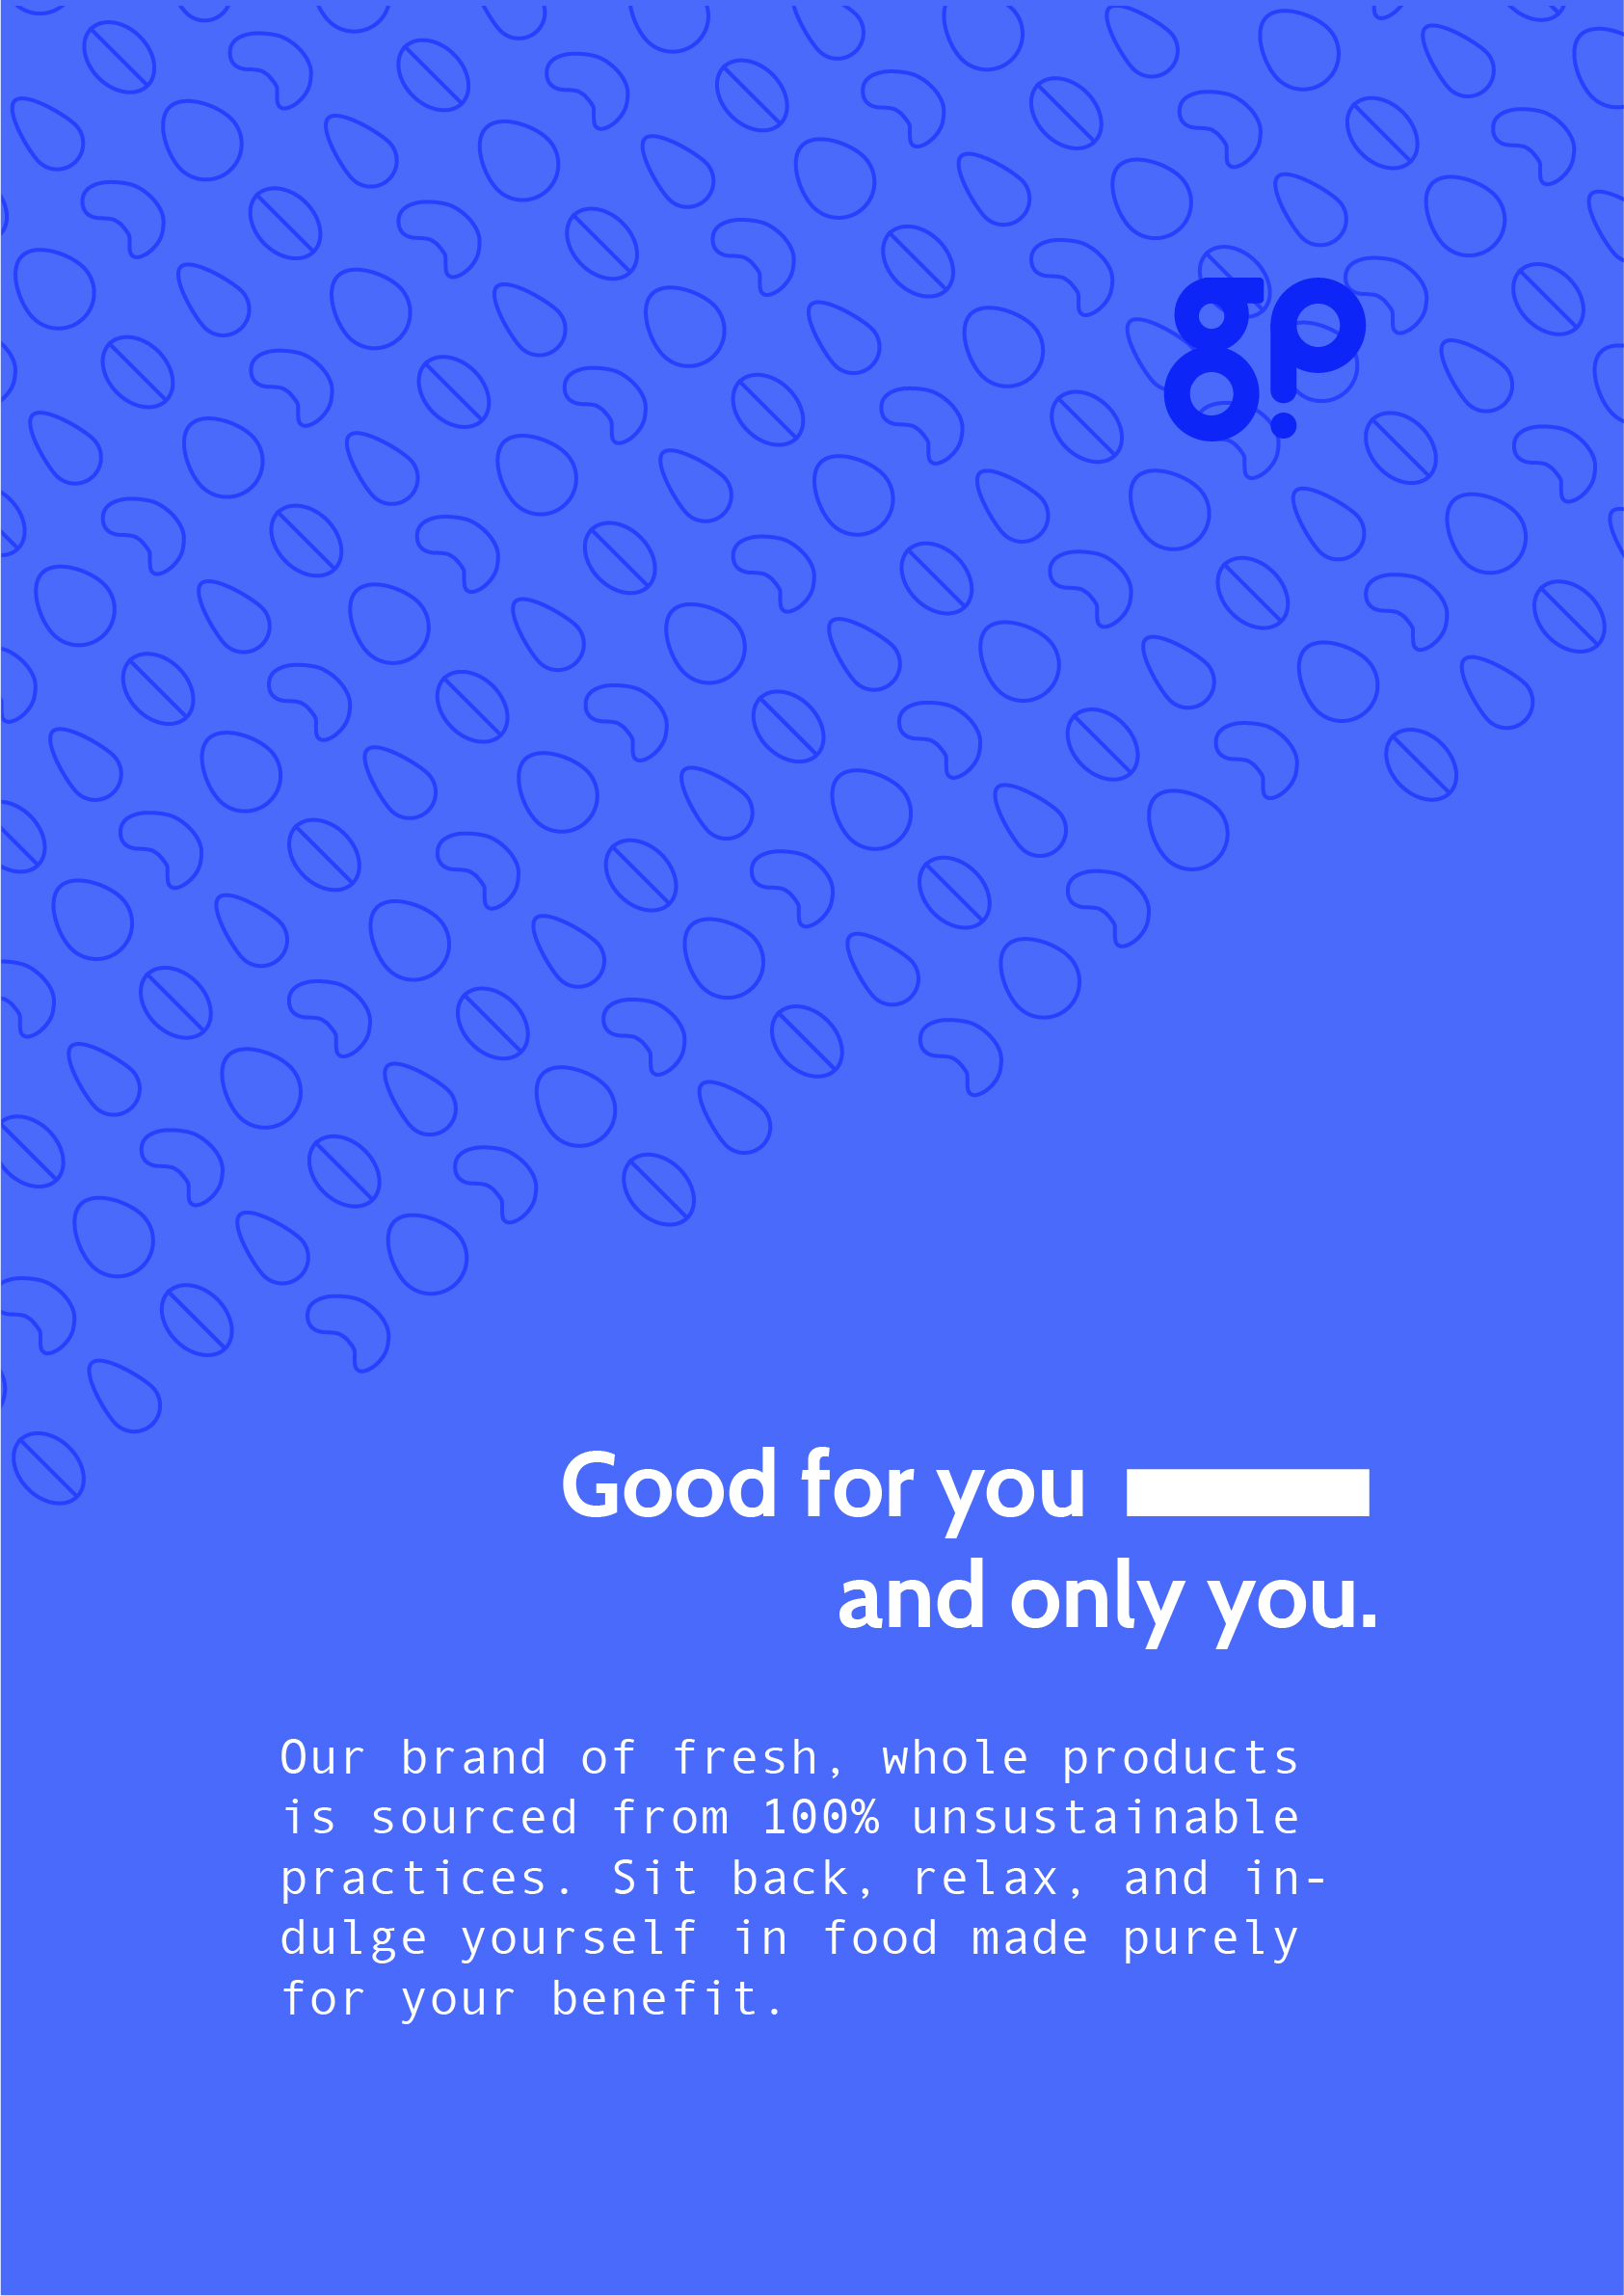 """A blue Guilty Pleasures promotional poster that says """"Good for you, and only you""""."""